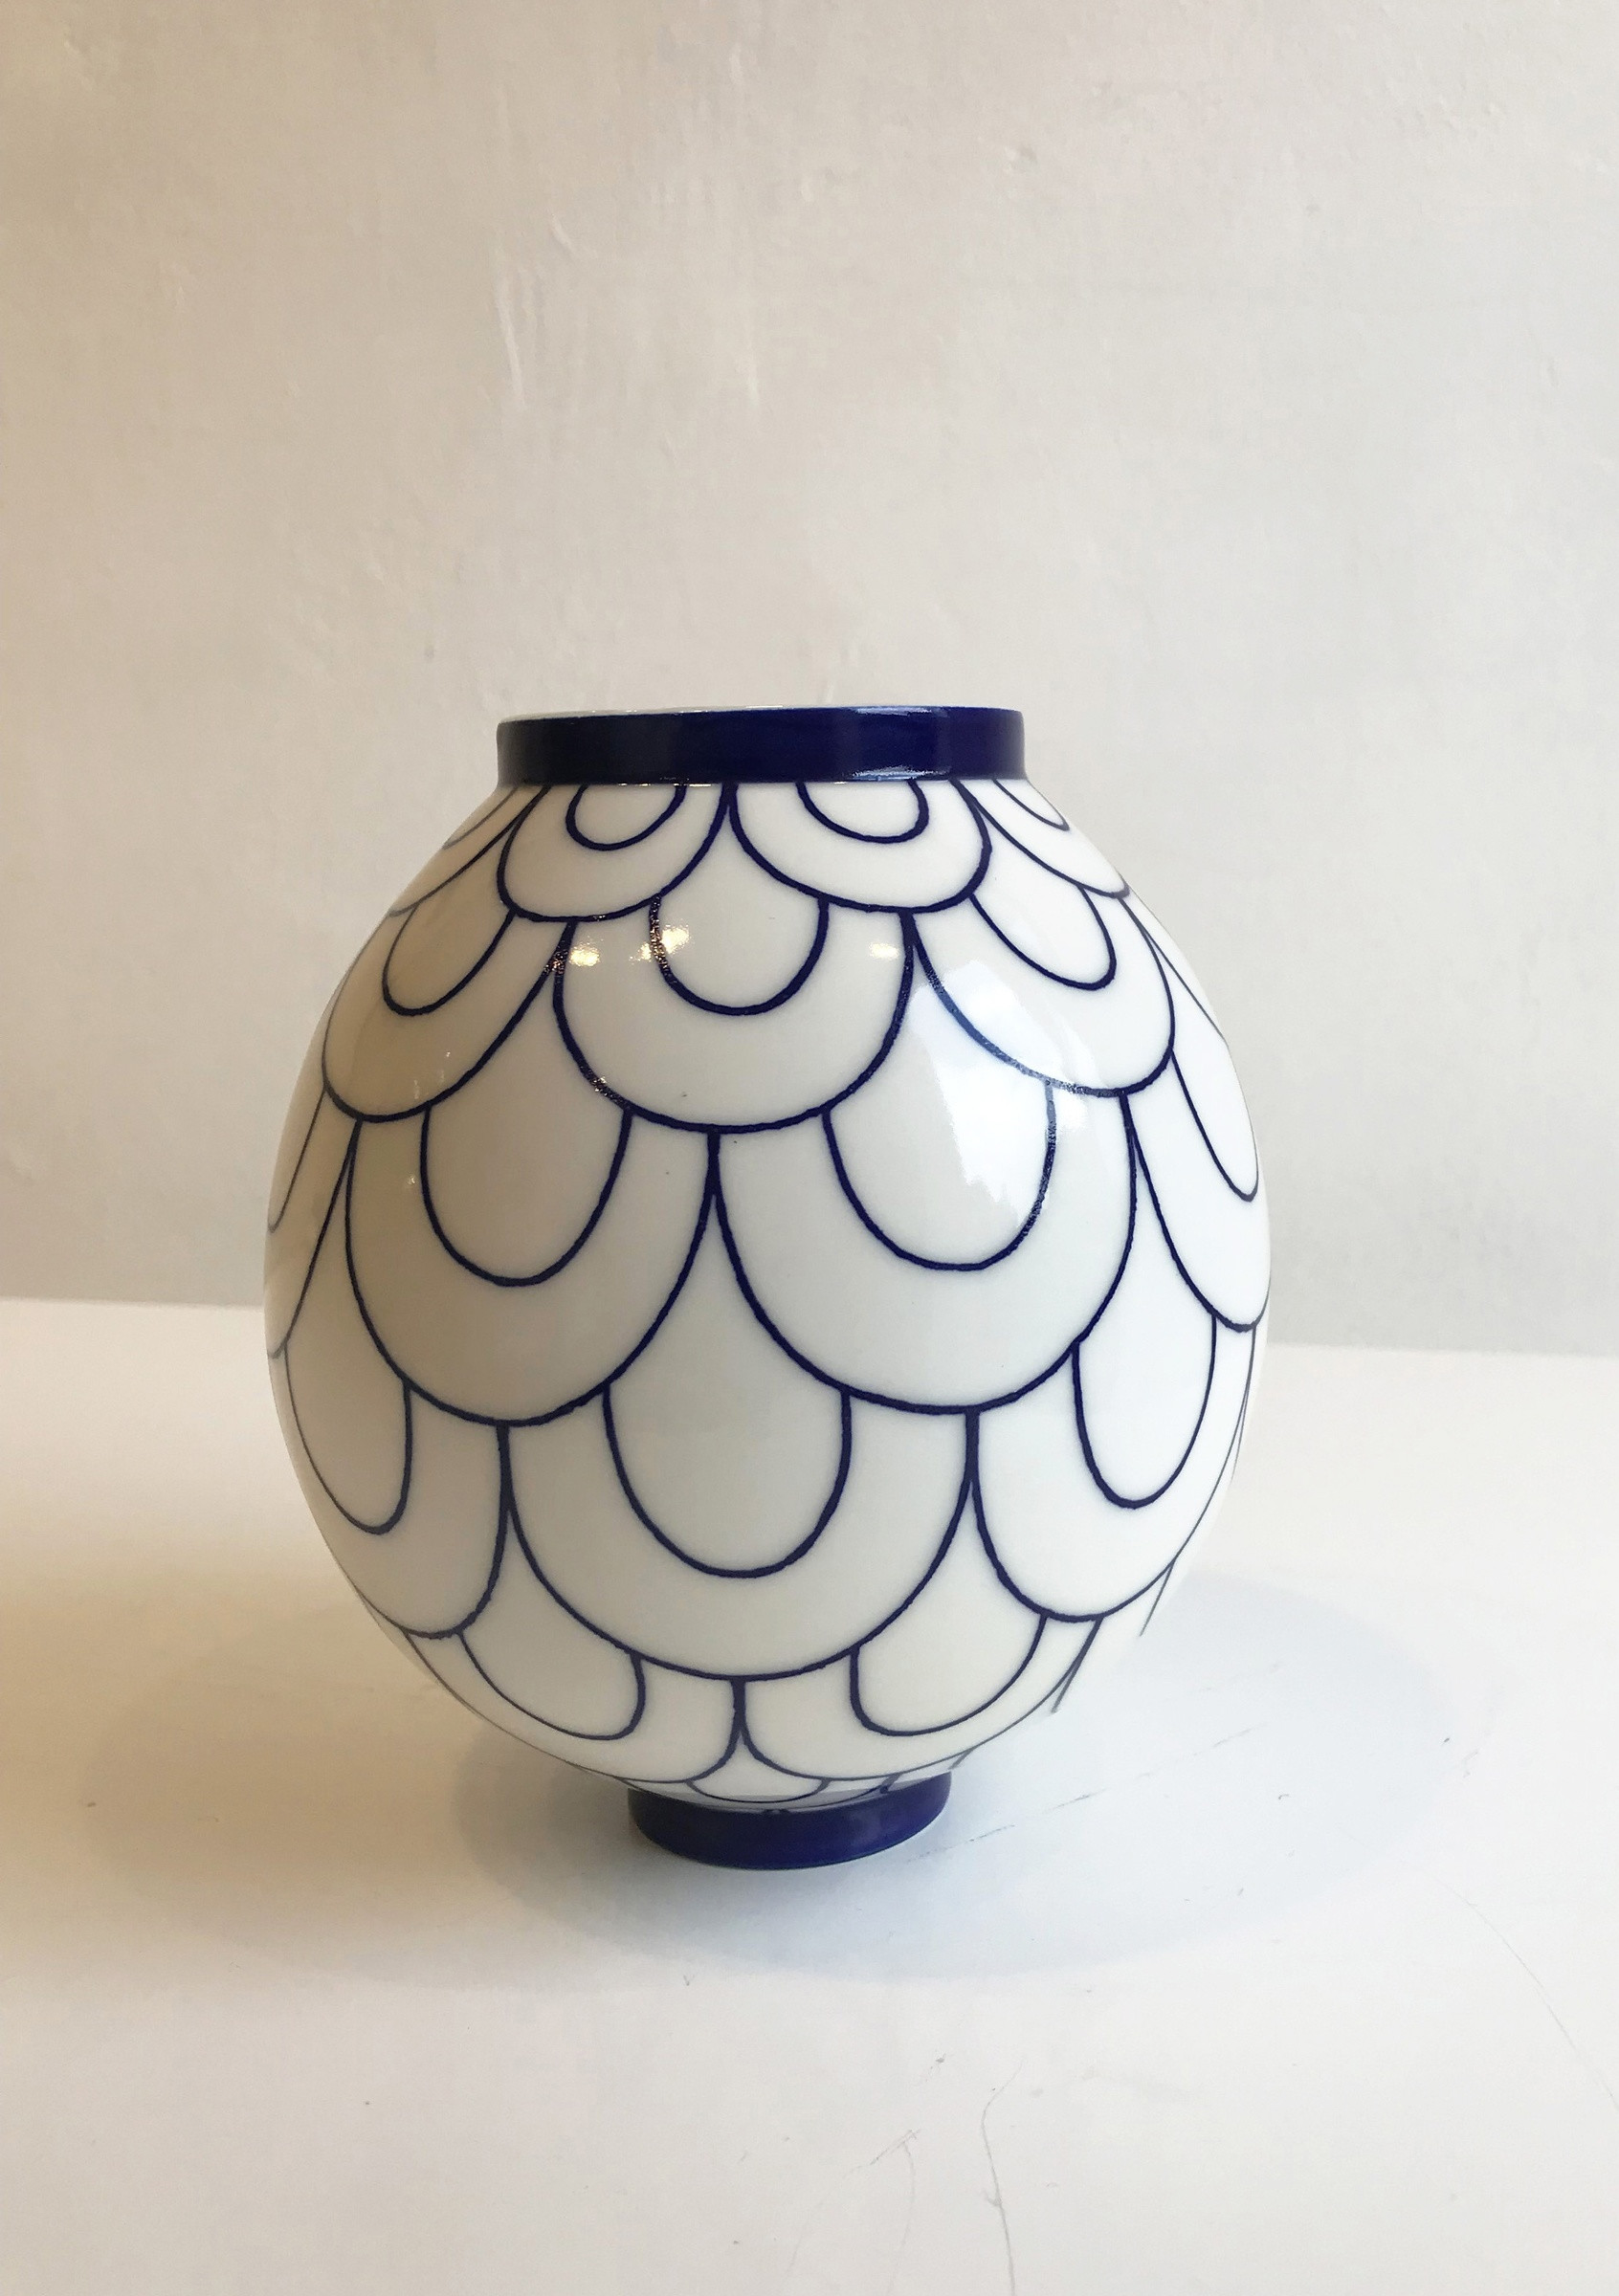 29 Fashionable Blue and White Vases and Urns